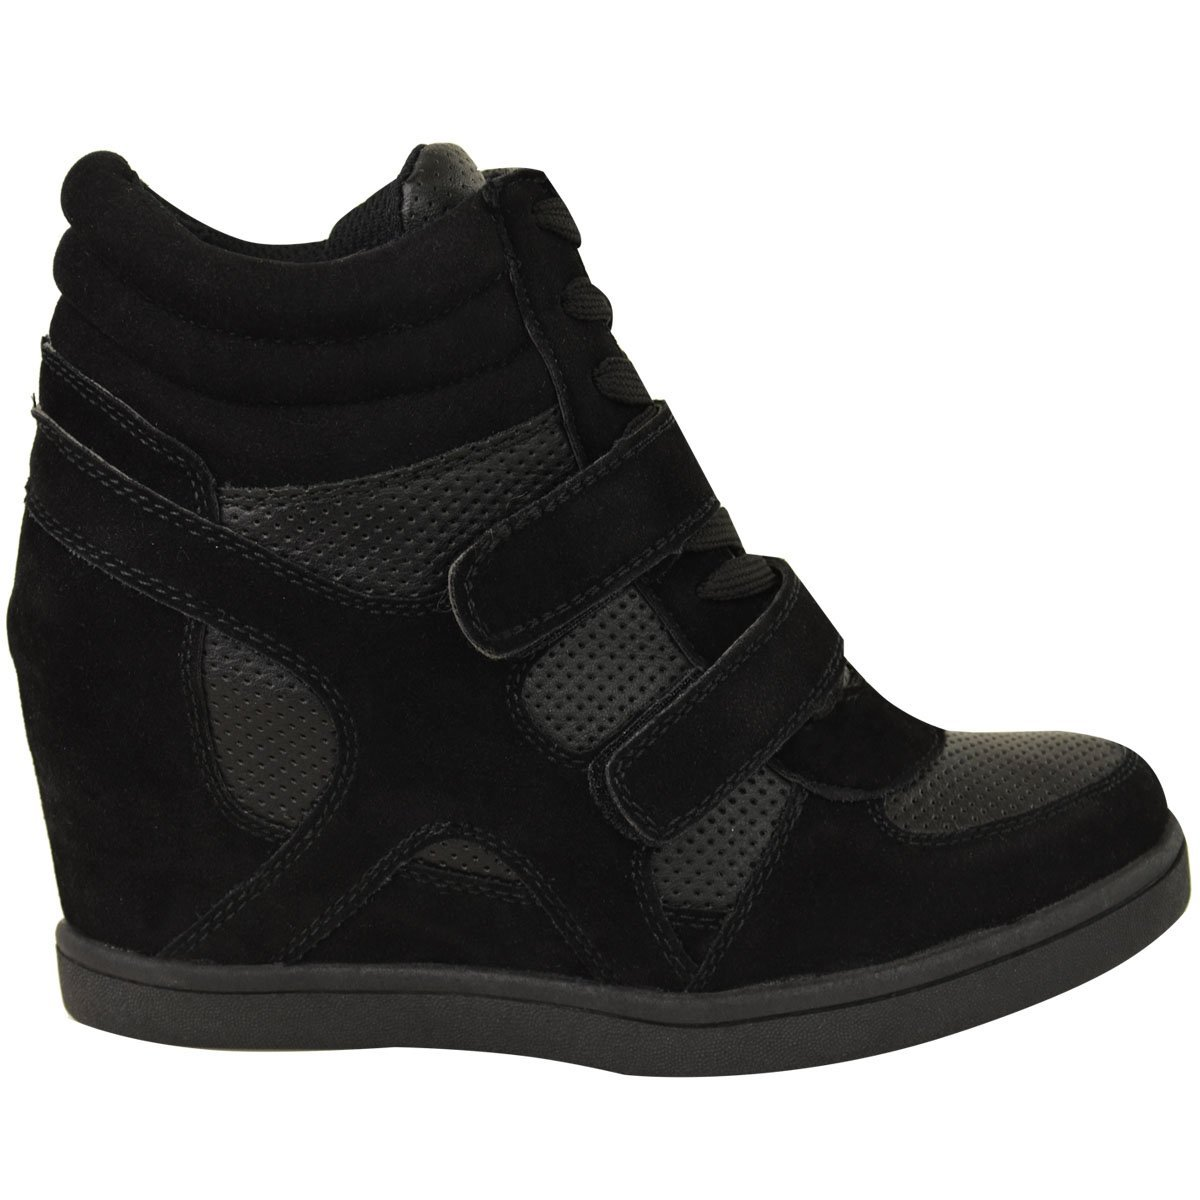 277483ed181a Branded New Women Ladies Hi Top Wedge Trainers Sneakers Pumps Sport Ankle  Boots Size  Amazon.co.uk  Shoes   Bags